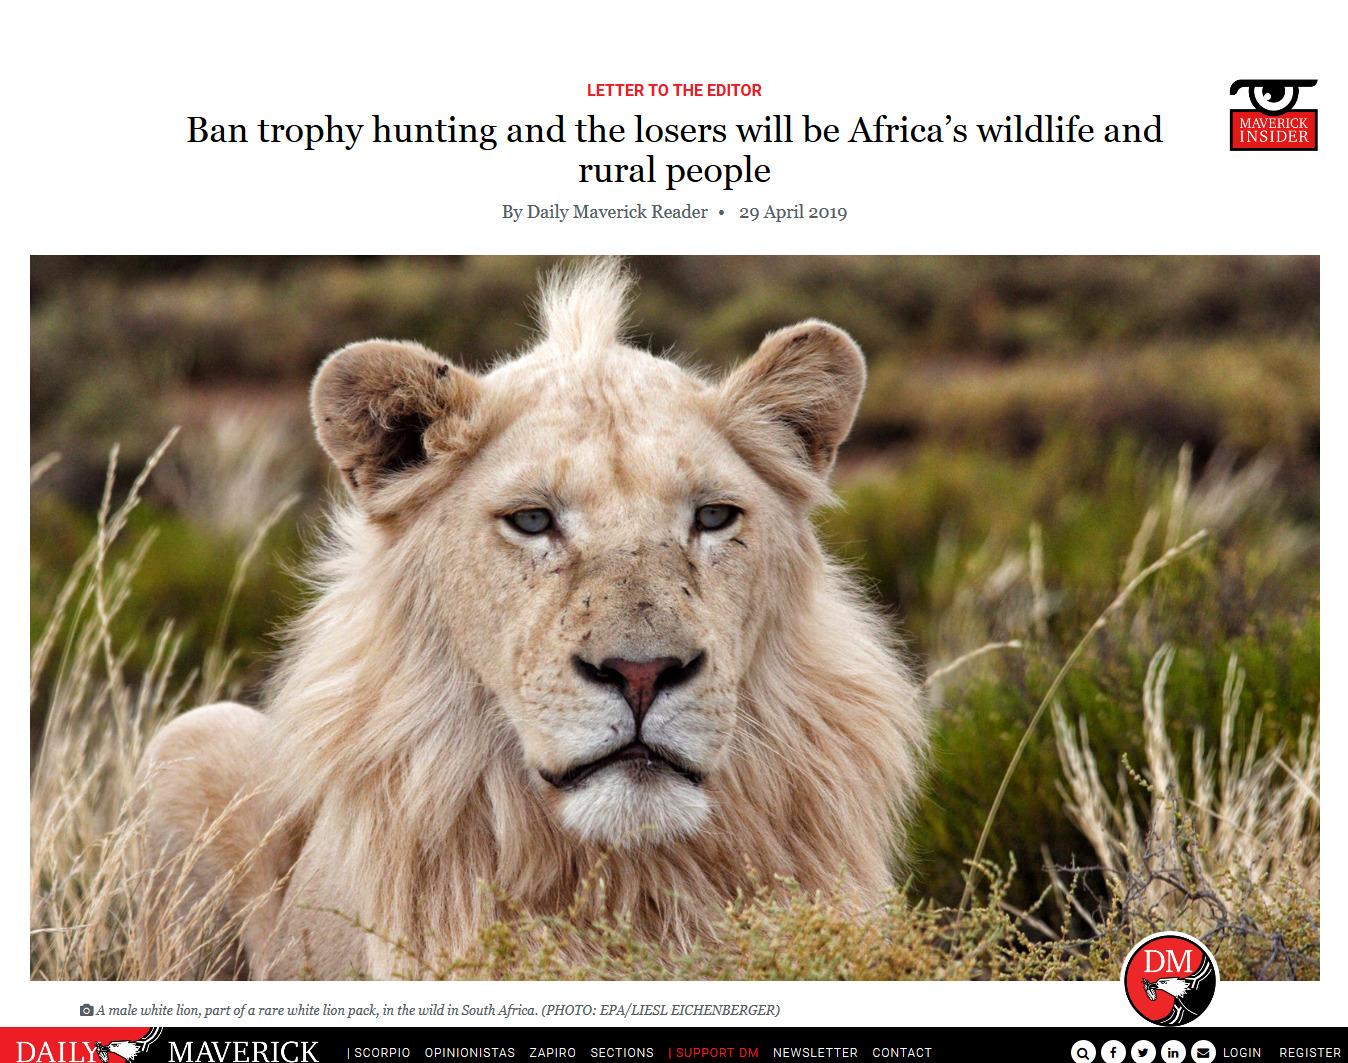 Ban trophy hunting and the losers will be Africa's wildlife and rural people.jpg